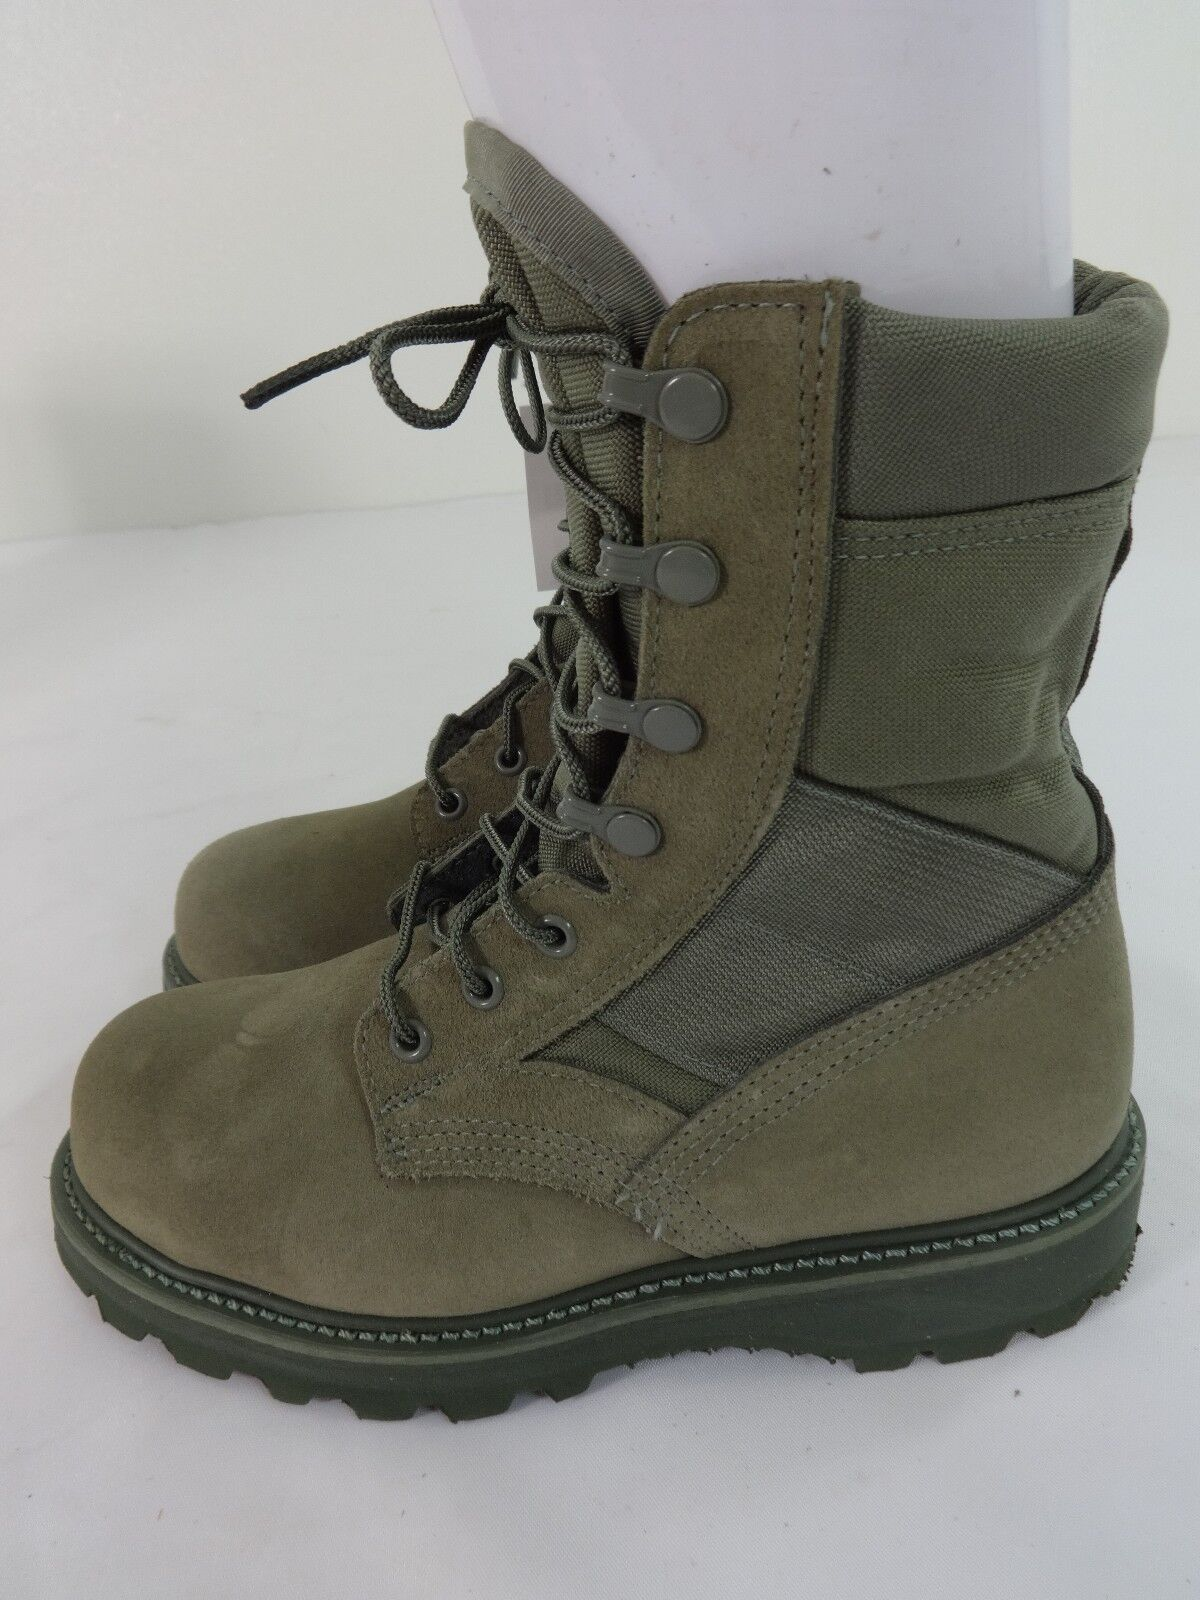 THOROGOOD USAF SAGE GREEN HOT WEATHER STEEL TOE COMBAT BOOTS VIBRAM SOLES  3.5 N b856a4aa7354